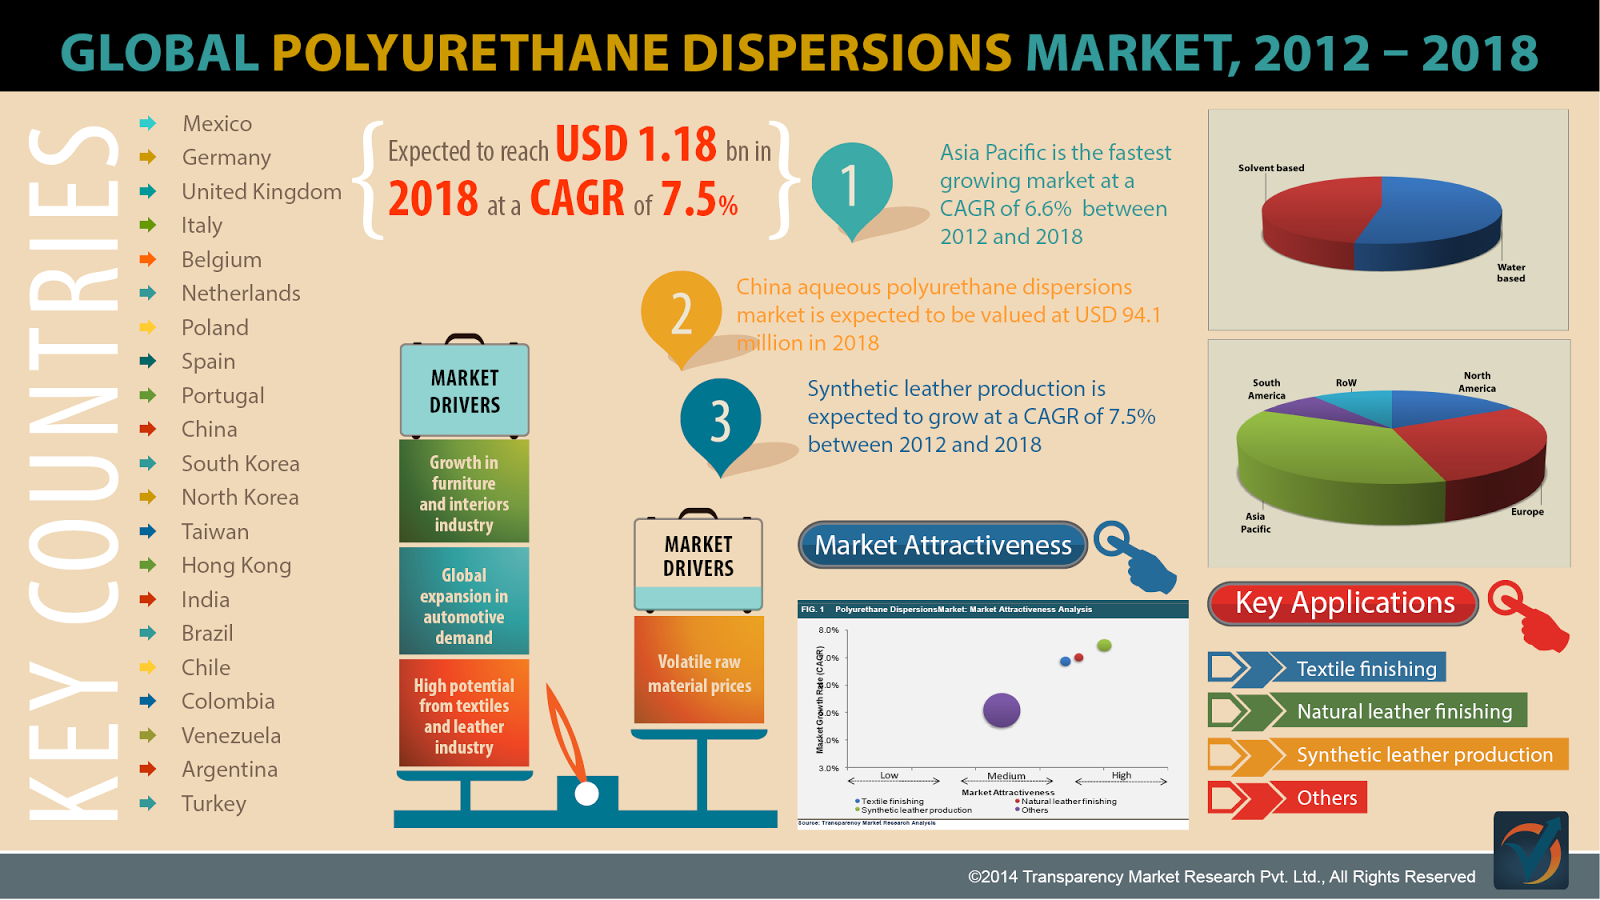 Polyurethane Dispersions Market